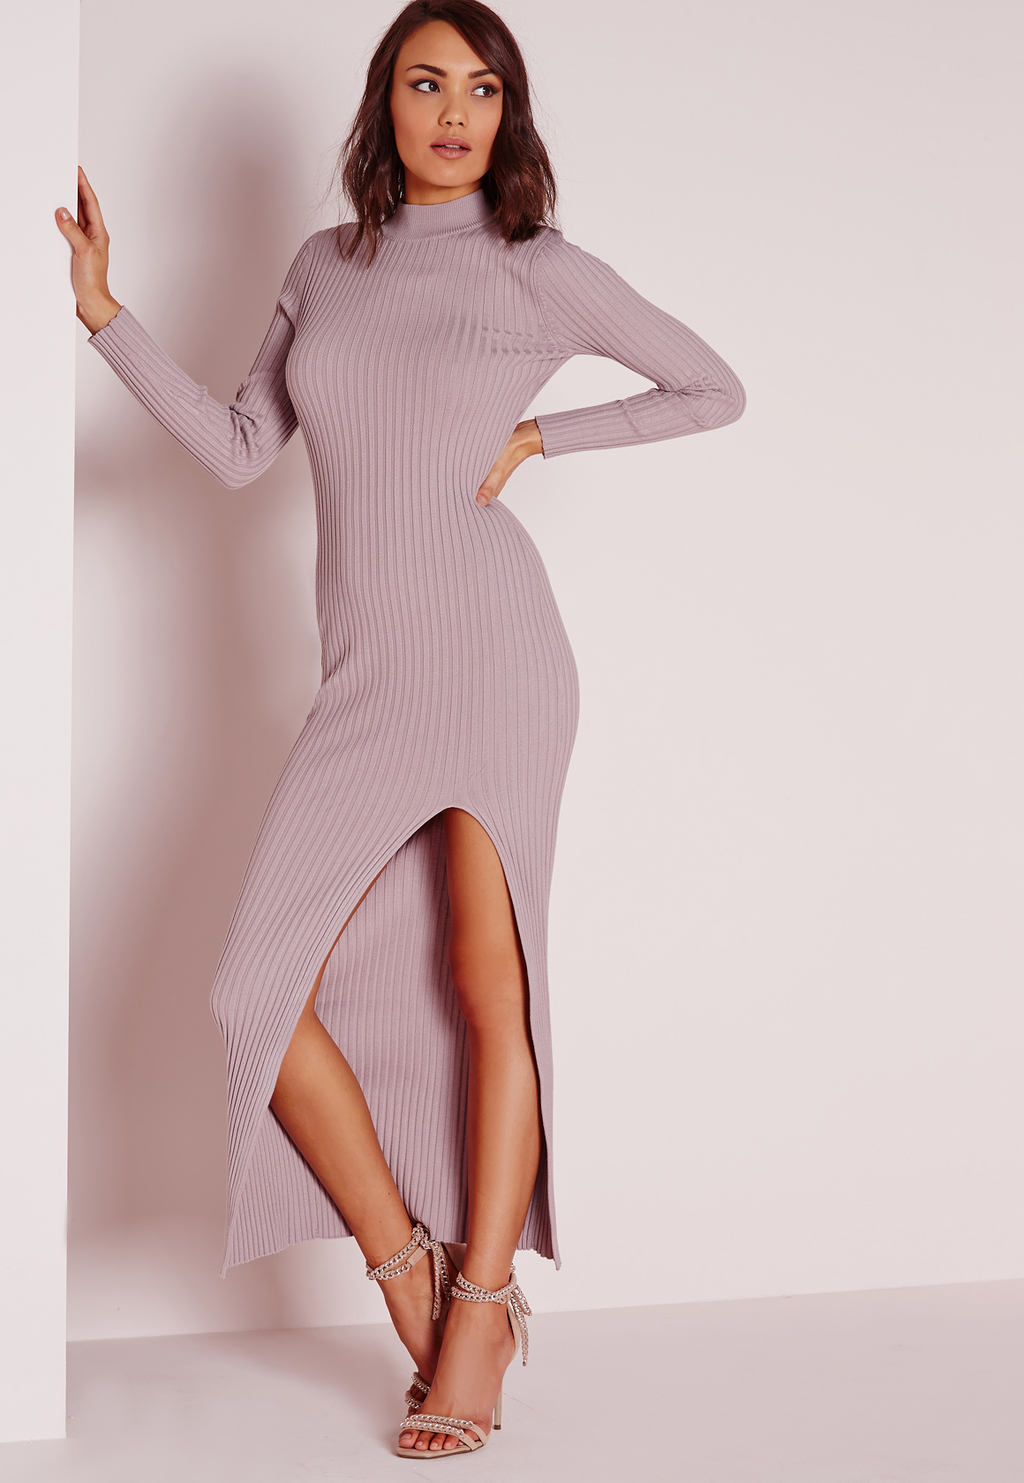 Thigh Split Maxi Jumper Dress Mauve, Mauve - fit: tight; pattern: plain; neckline: high neck; style: bodycon; length: ankle length; hip detail: draws attention to hips; predominant colour: lilac; occasions: evening; fibres: viscose/rayon - 100%; sleeve length: long sleeve; sleeve style: standard; texture group: jersey - clingy; pattern type: fabric; season: s/s 2016; wardrobe: event